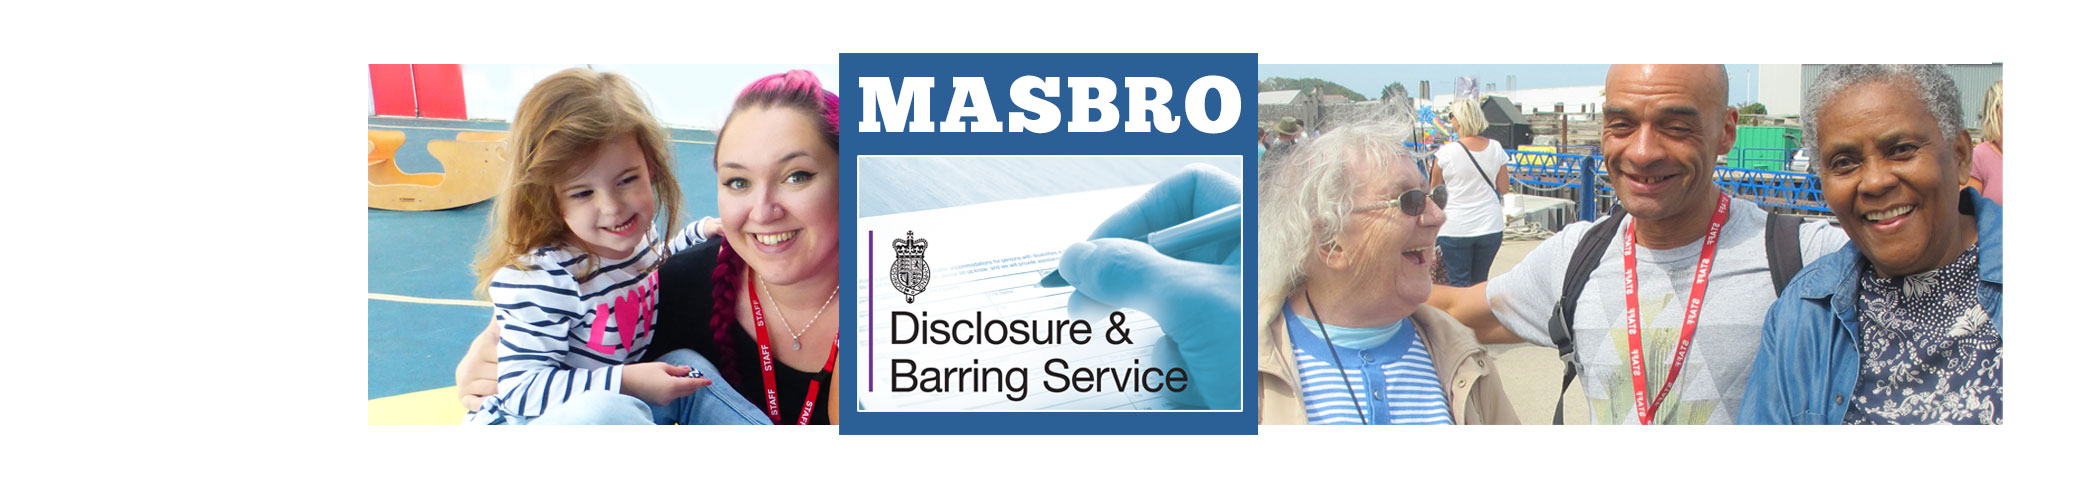 Masbro Disclsoure & Barring Service page iphone banner